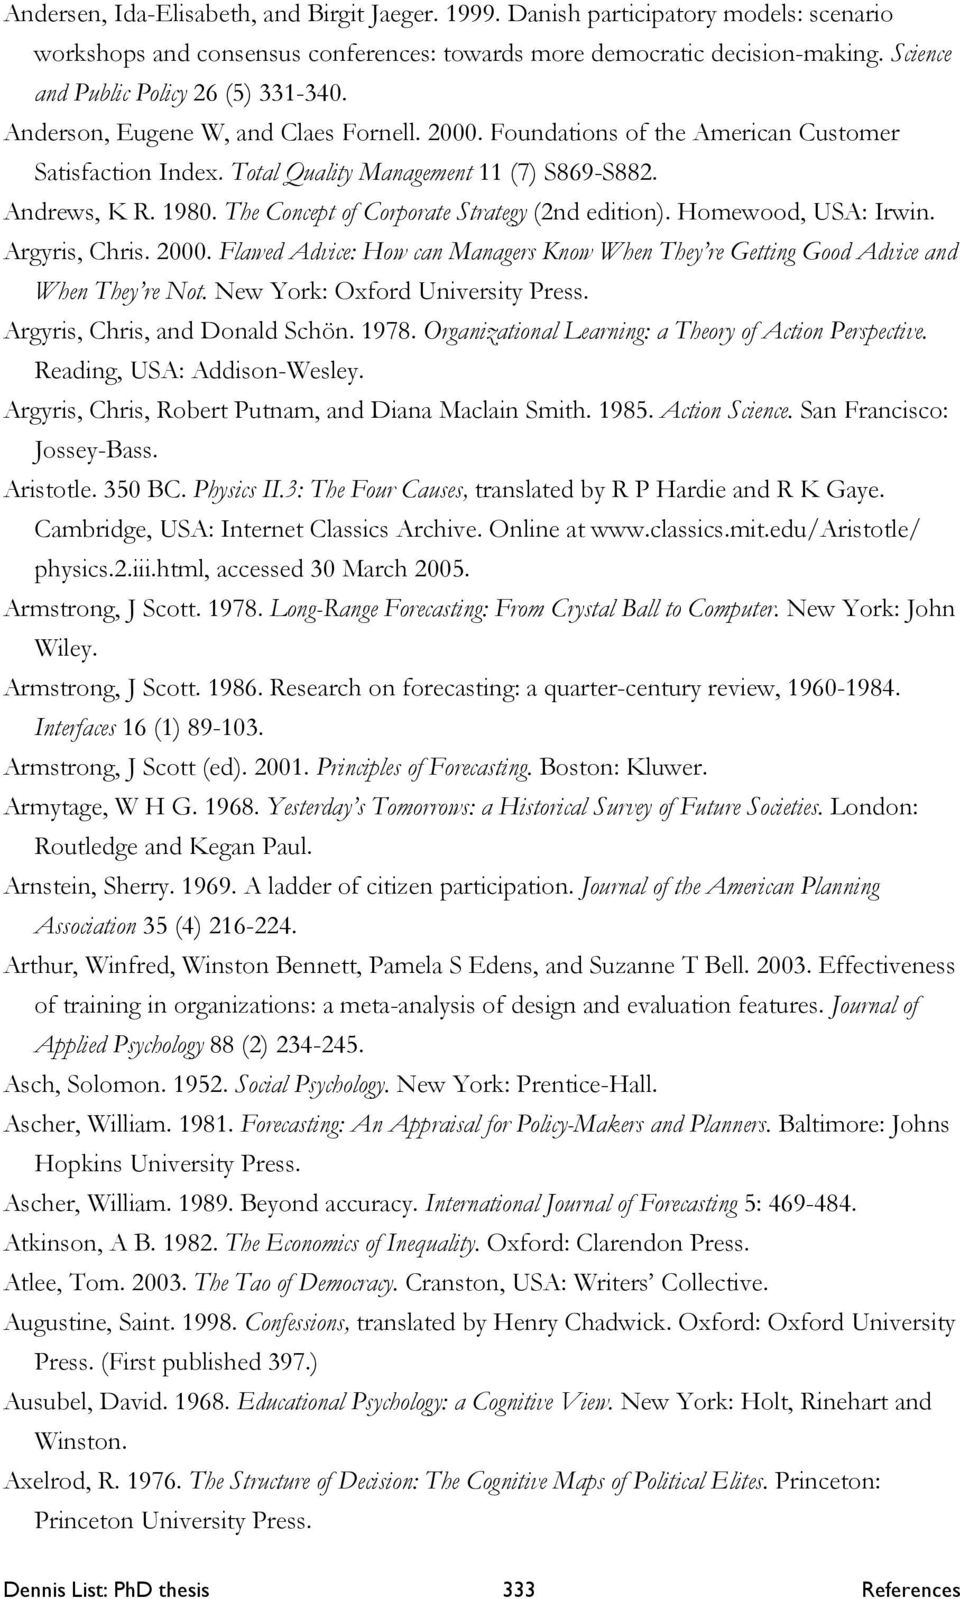 list of doctoral thesis List of illustrations (tables / figures / maps / nomenclature) item page numbers should align at the right margin download the example list of illustrations page (rtf) thesis and dissertation resources published by the office of research and graduate studies, 210 jesse hall, columbia.